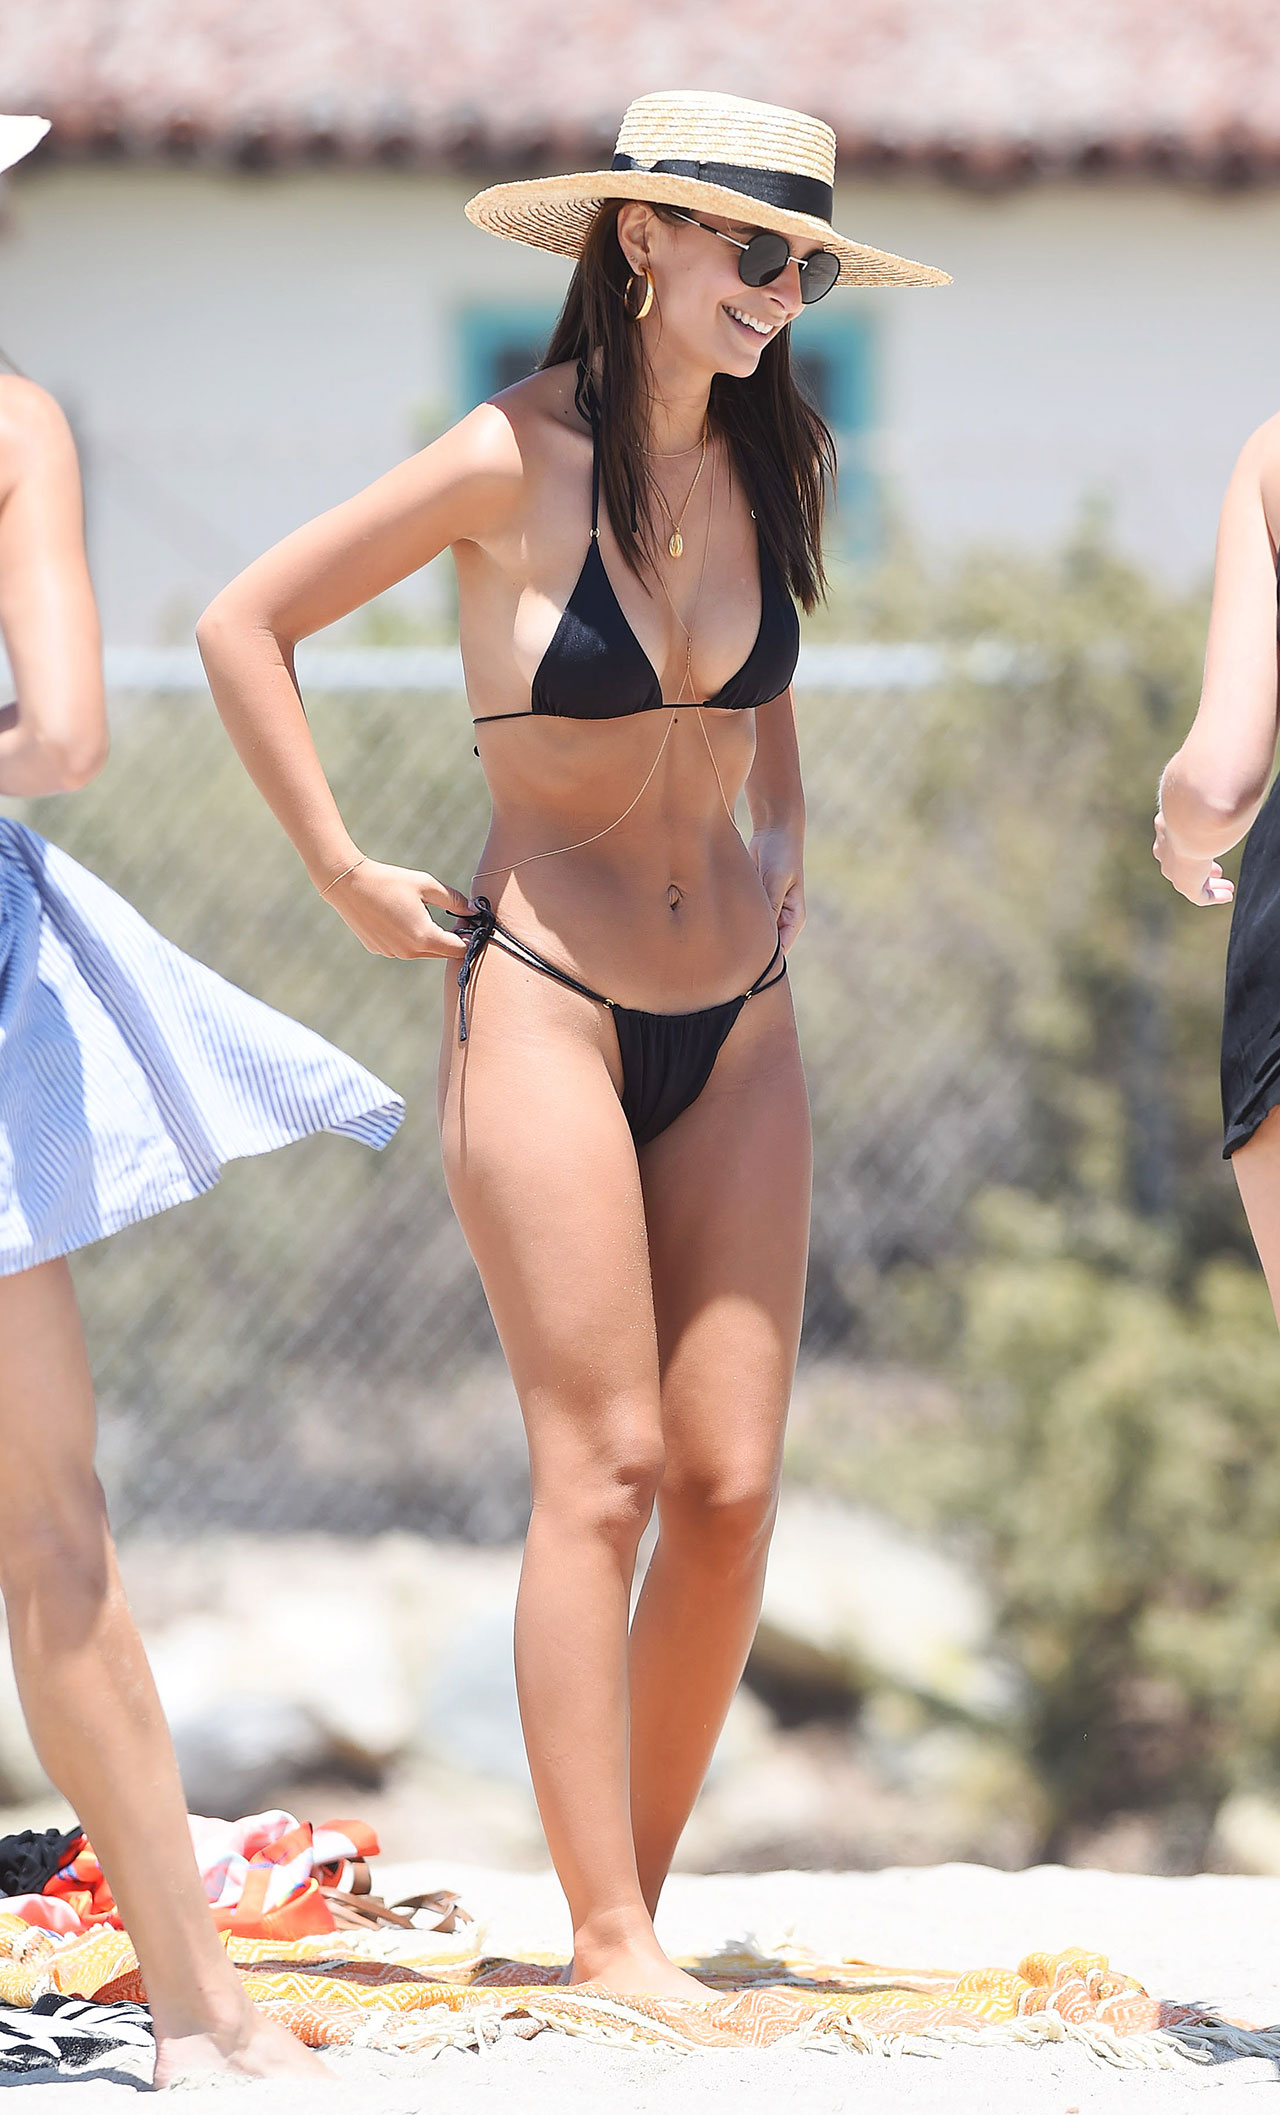 Emily Ratajkowski Is All Smiles Showing Off Toned Beach